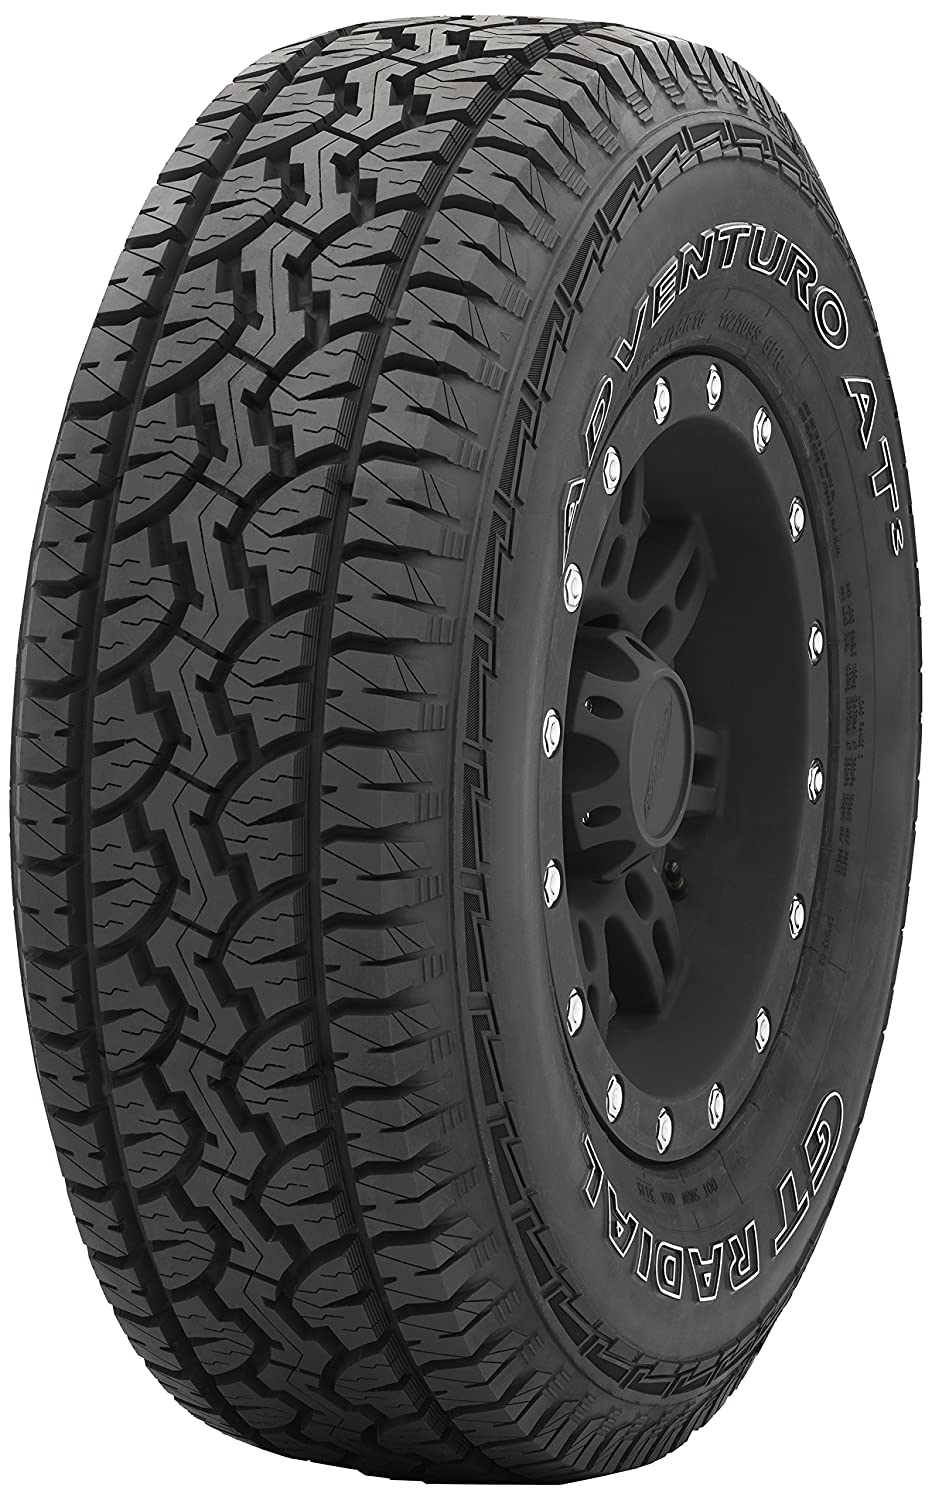 GT Radial ADVENTURO AT3 OWL All-Terrain Radial Tire - 31X10.50R15LT 109S 100A1902